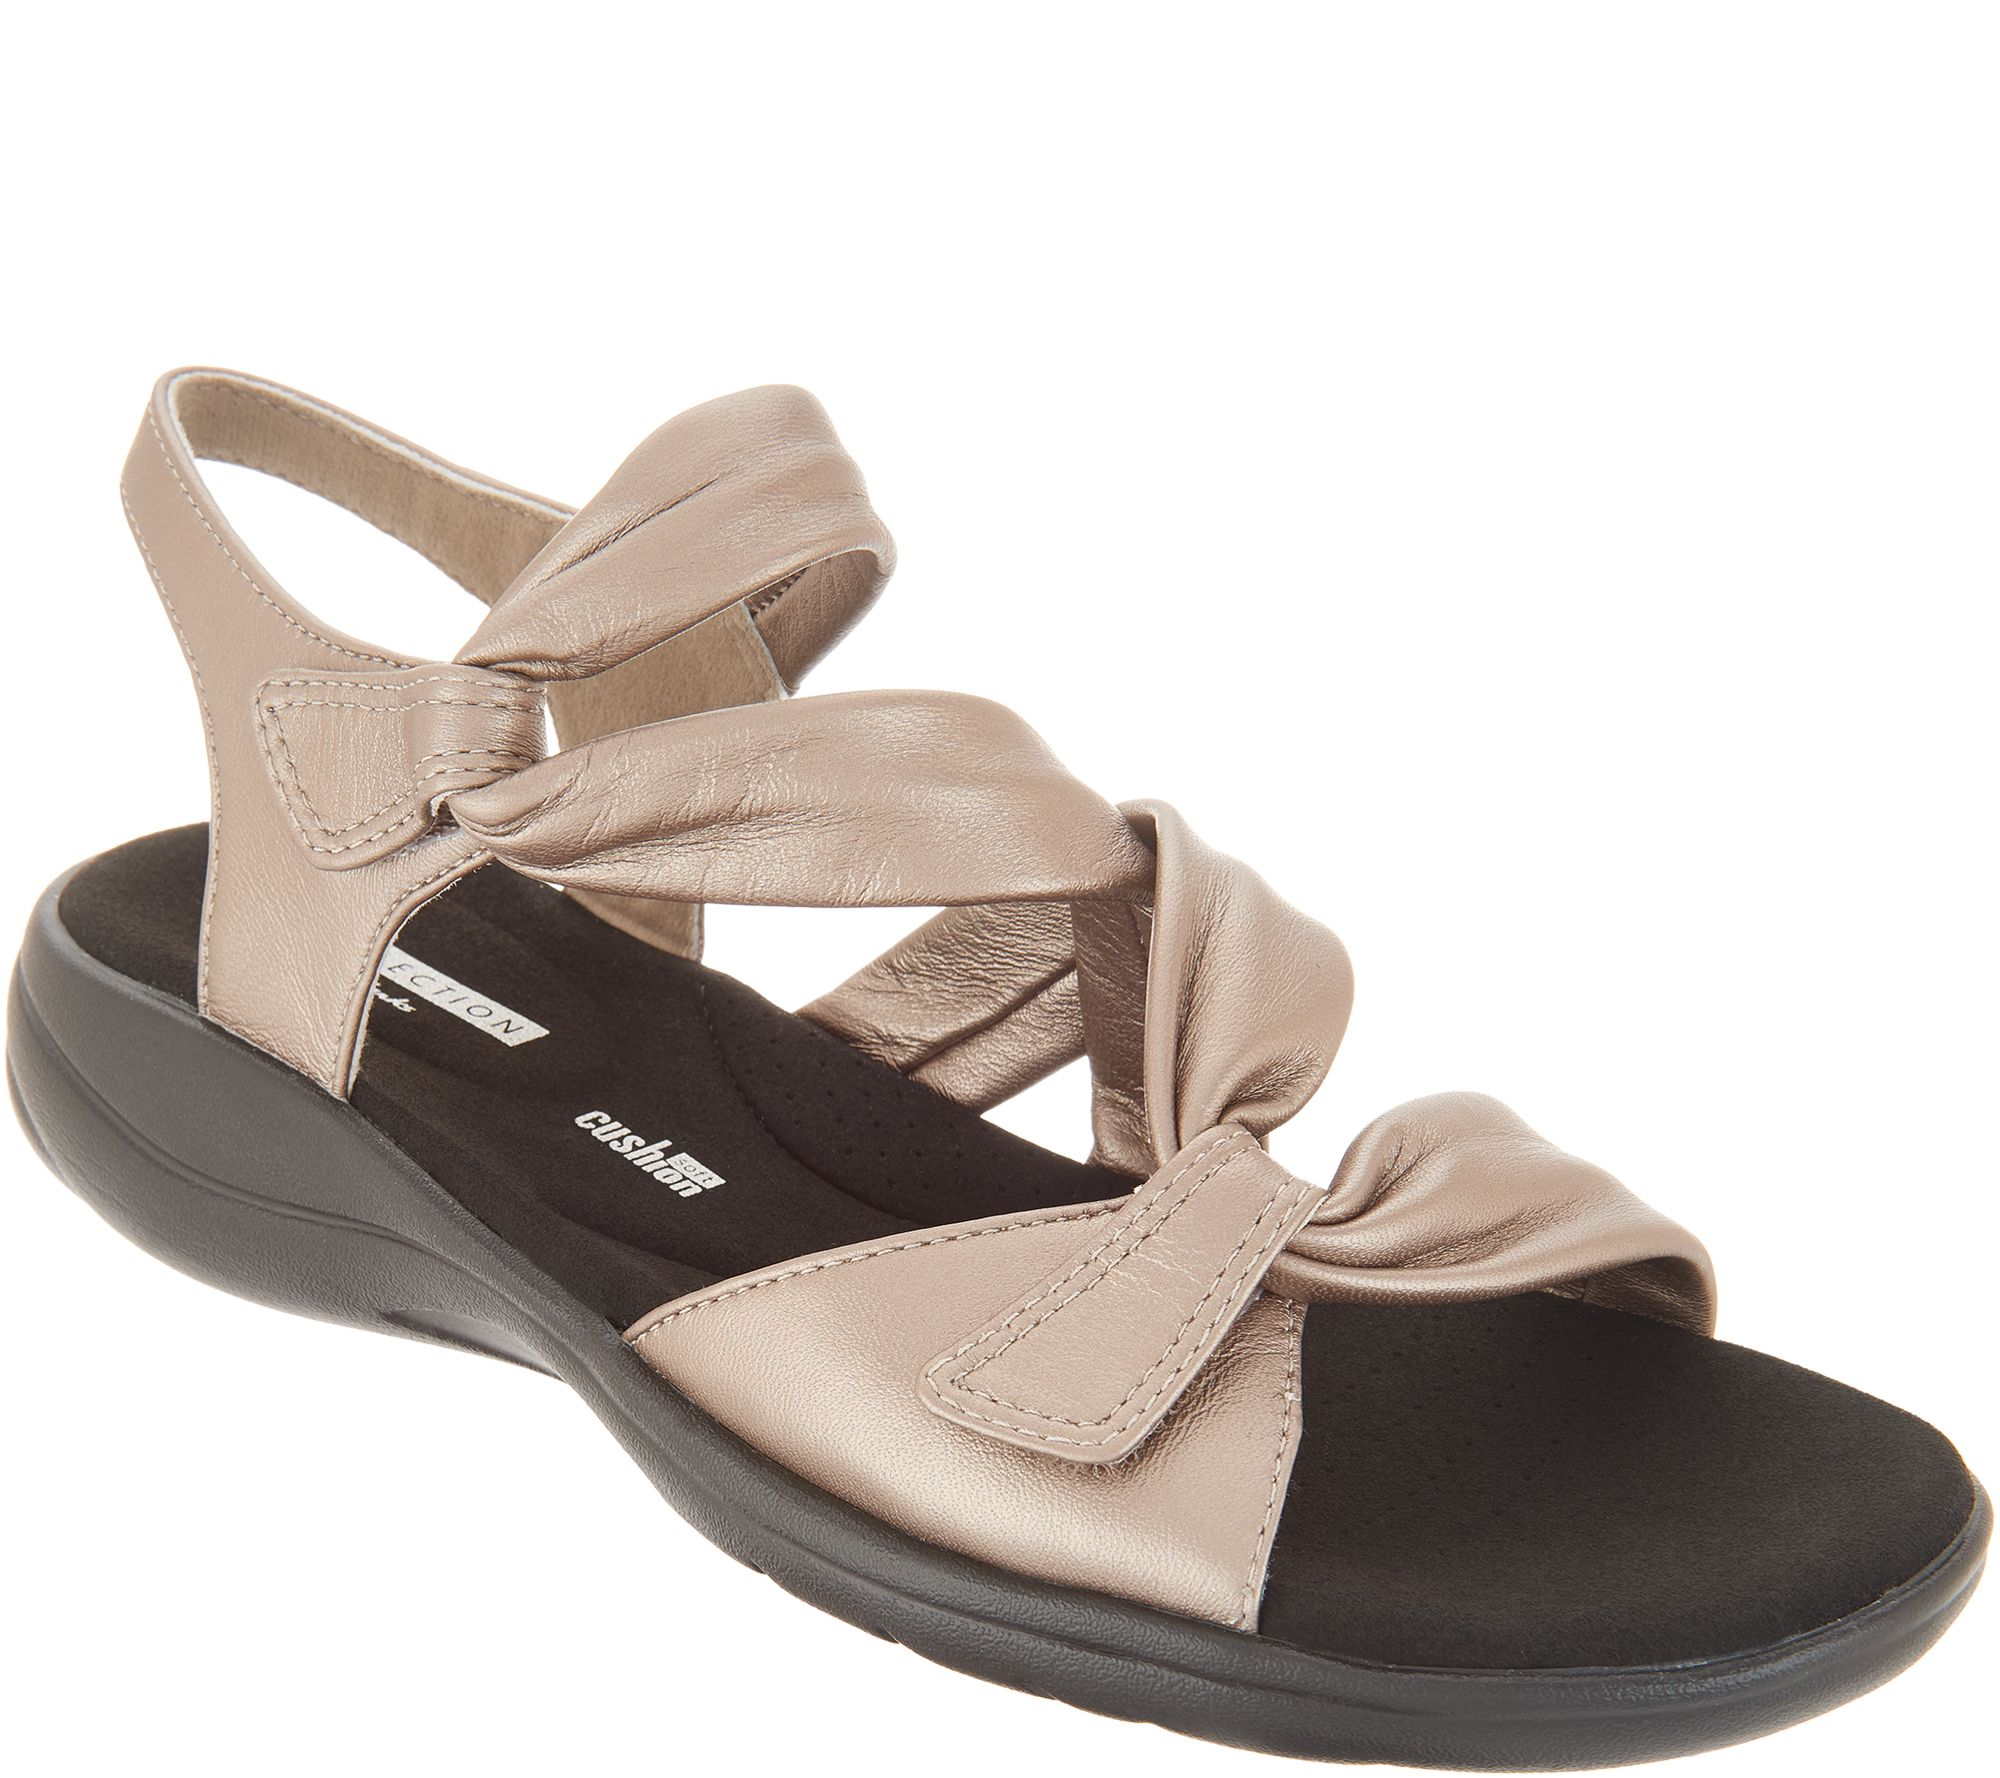 5f140b69bafe3c Clarks Leather Lightweight Adjustable Sandals - Saylie Moon - Page 1 —  QVC.com